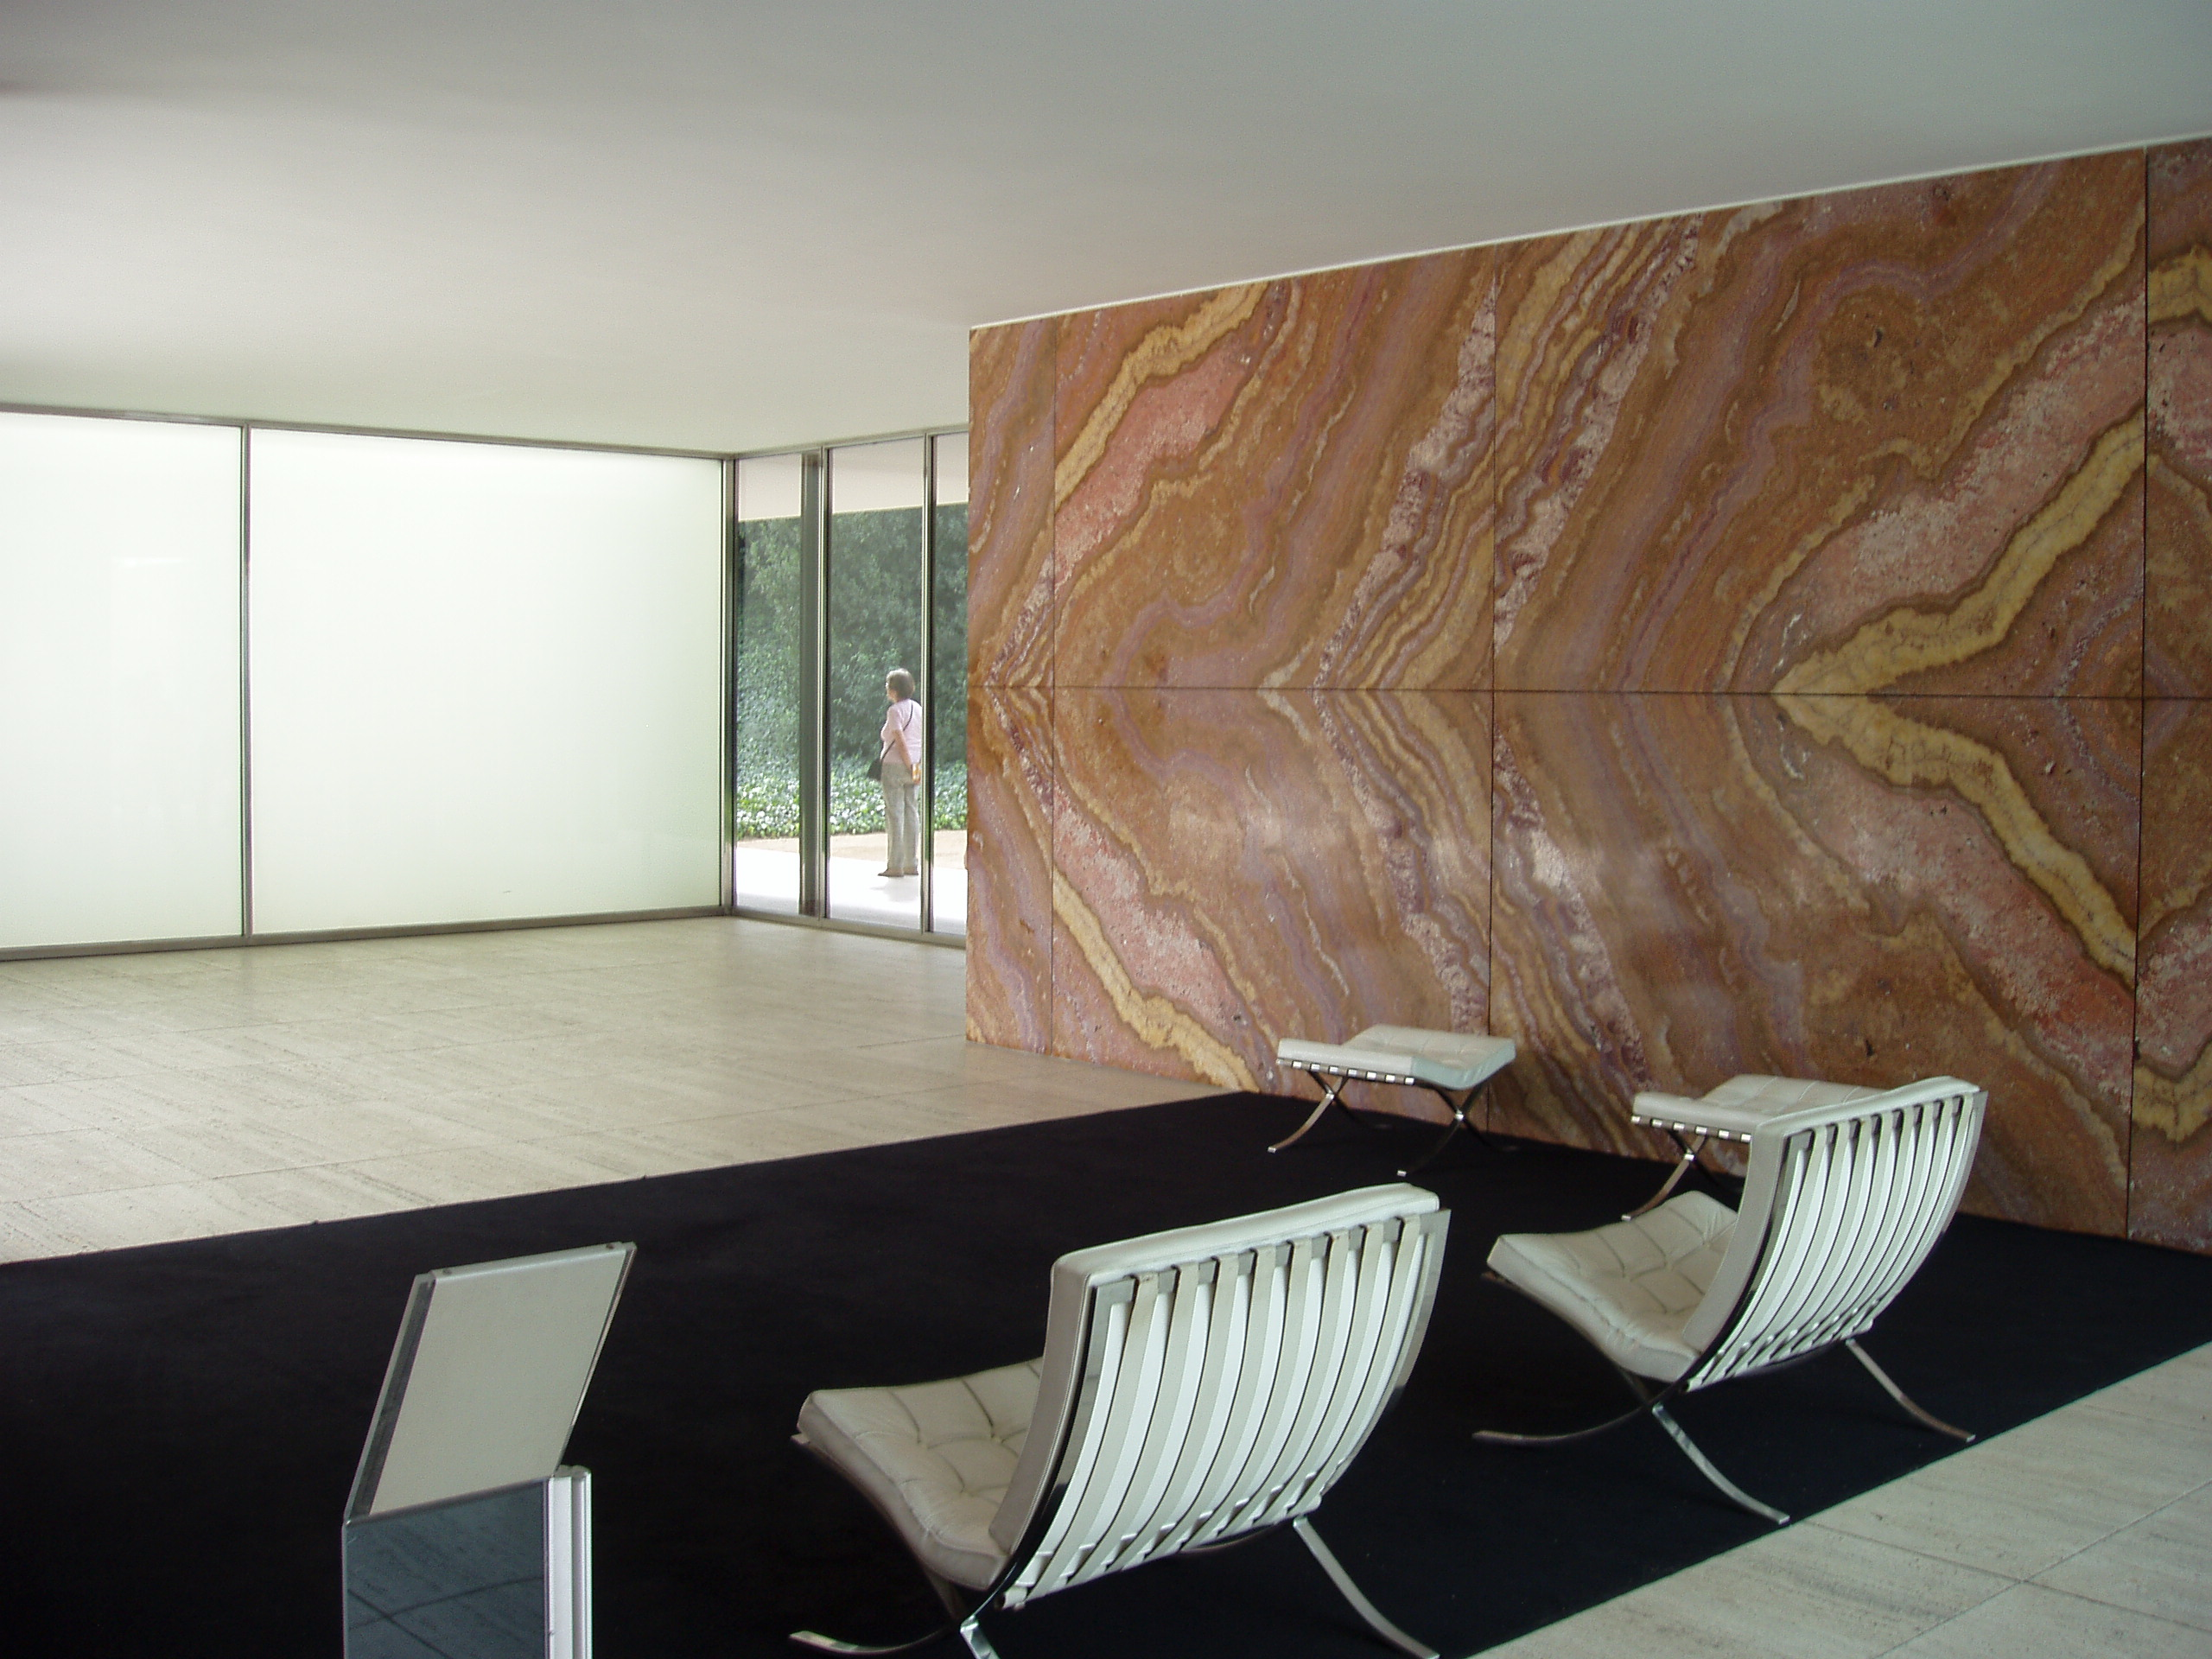 Sessel Wikipedia File:pavelló Mies 07.jpg - Wikimedia Commons